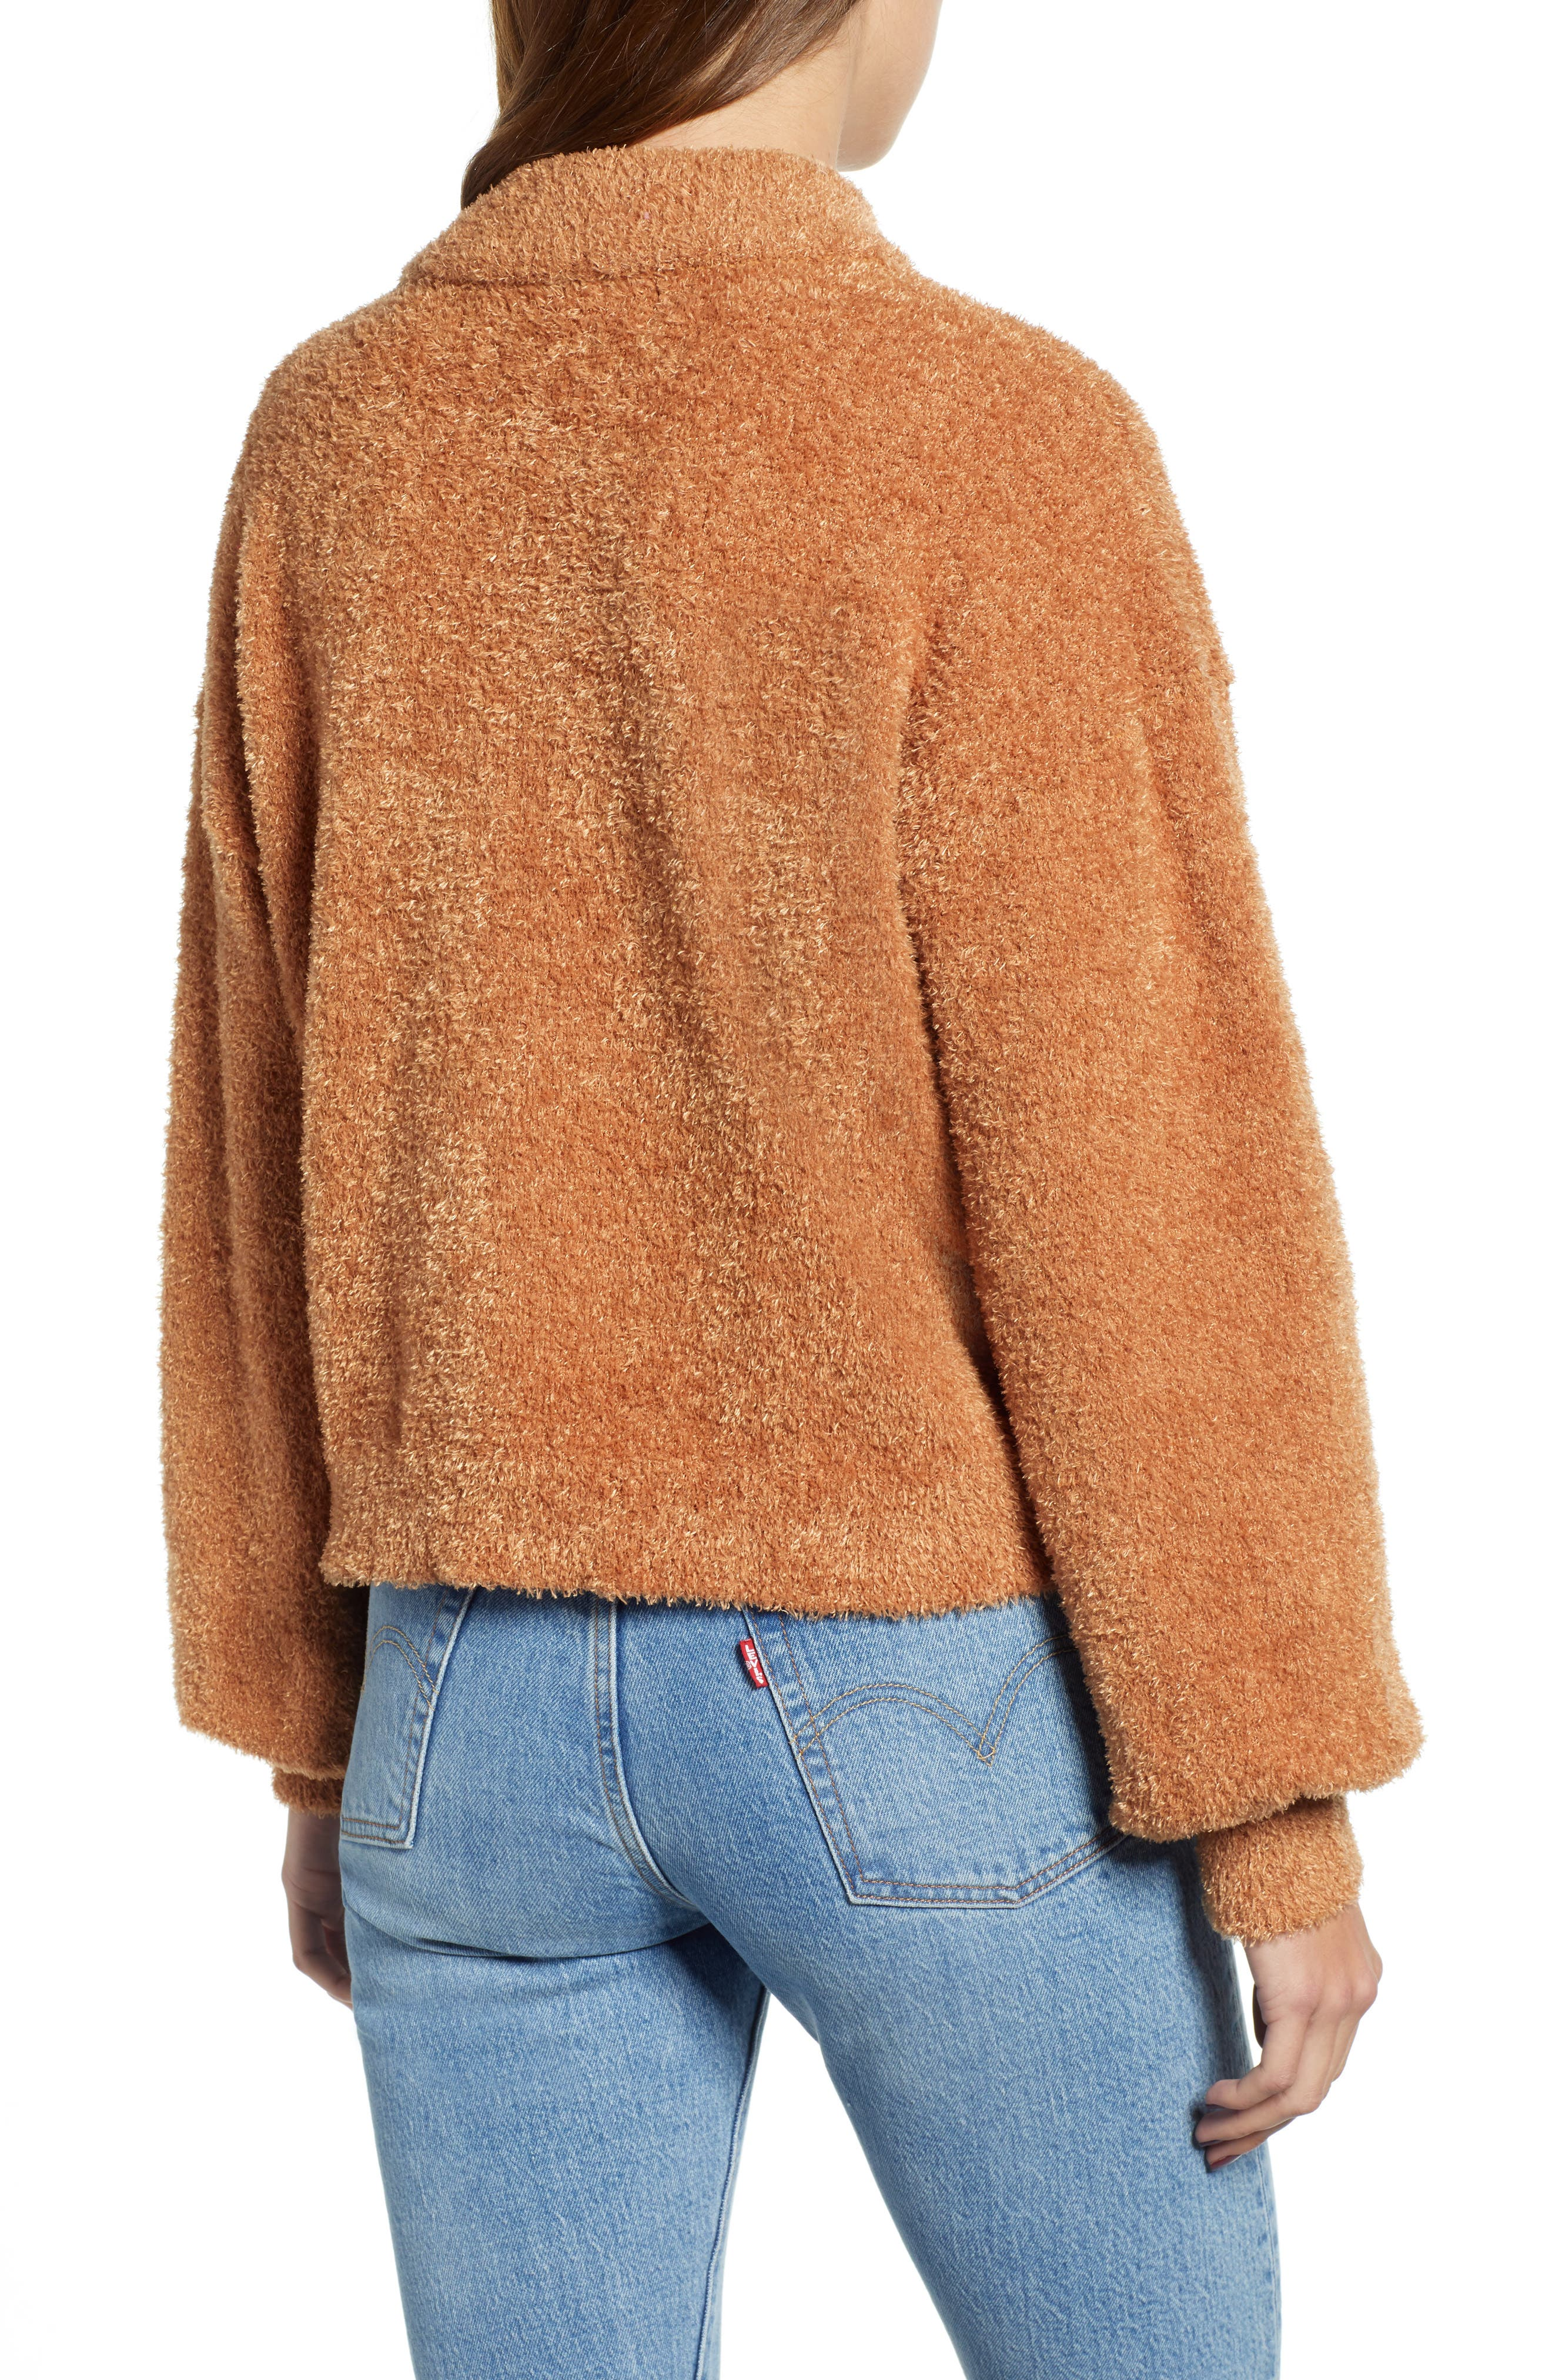 CODEXMODE,                             Cozy Chenille Sweater,                             Alternate thumbnail 2, color,                             250